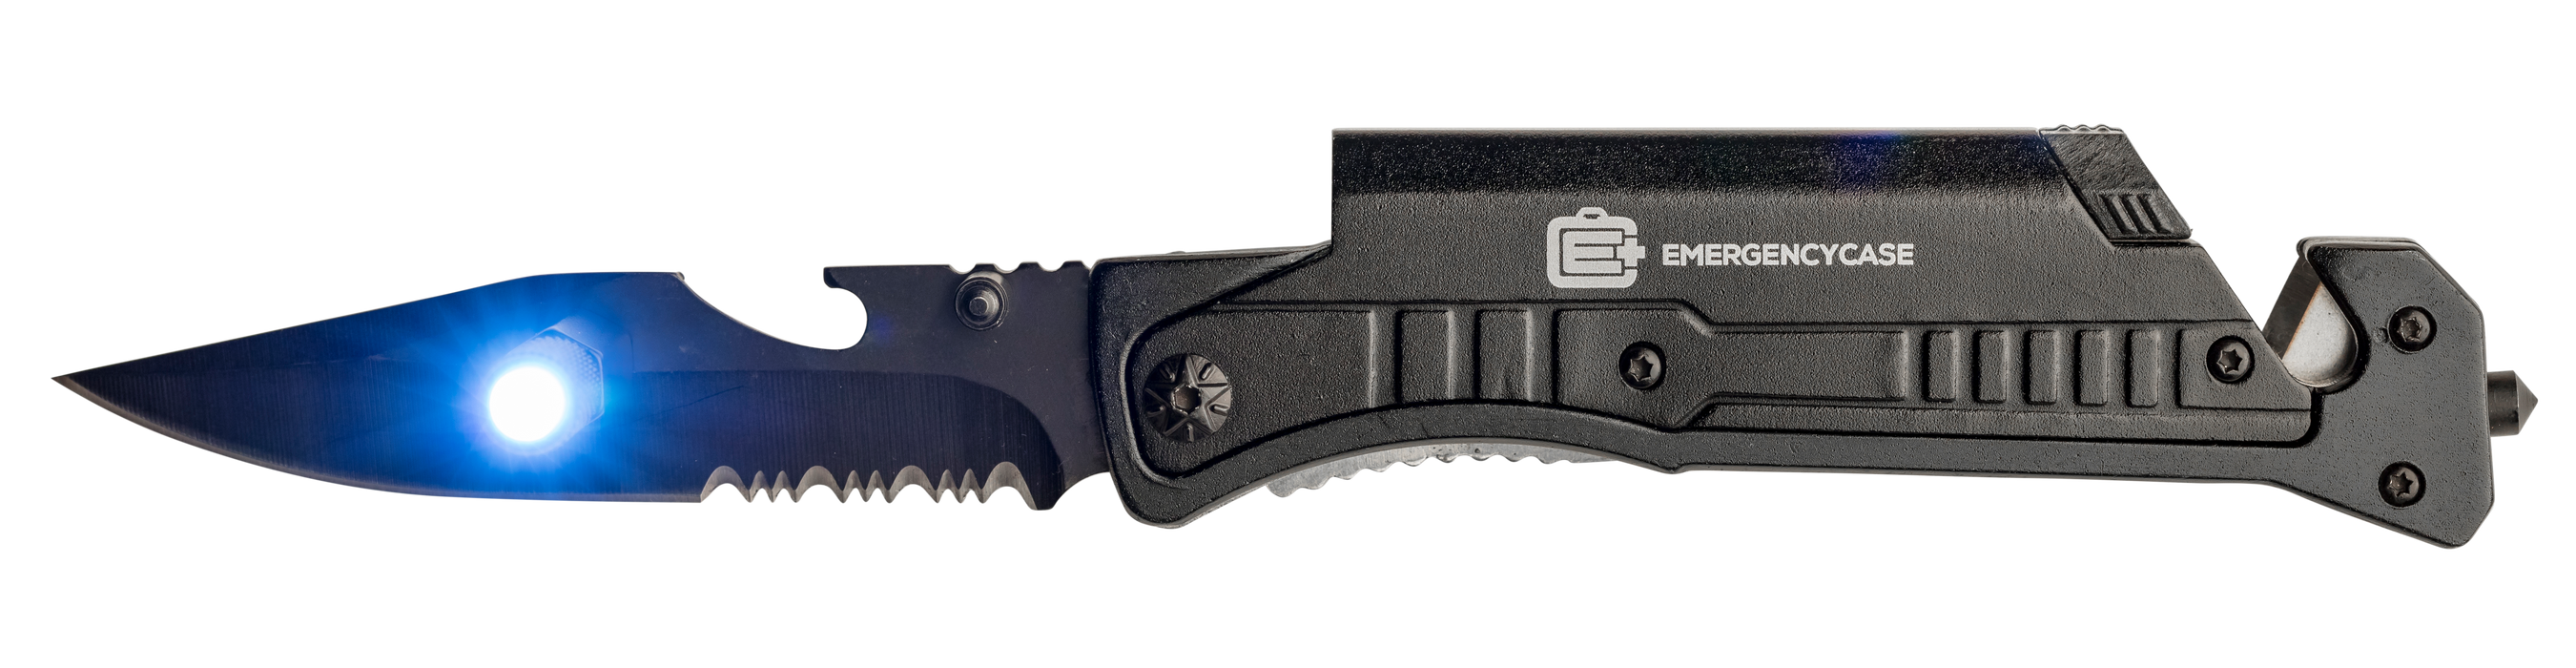 6-In-1 Emergency Preparedness Multi-Tool